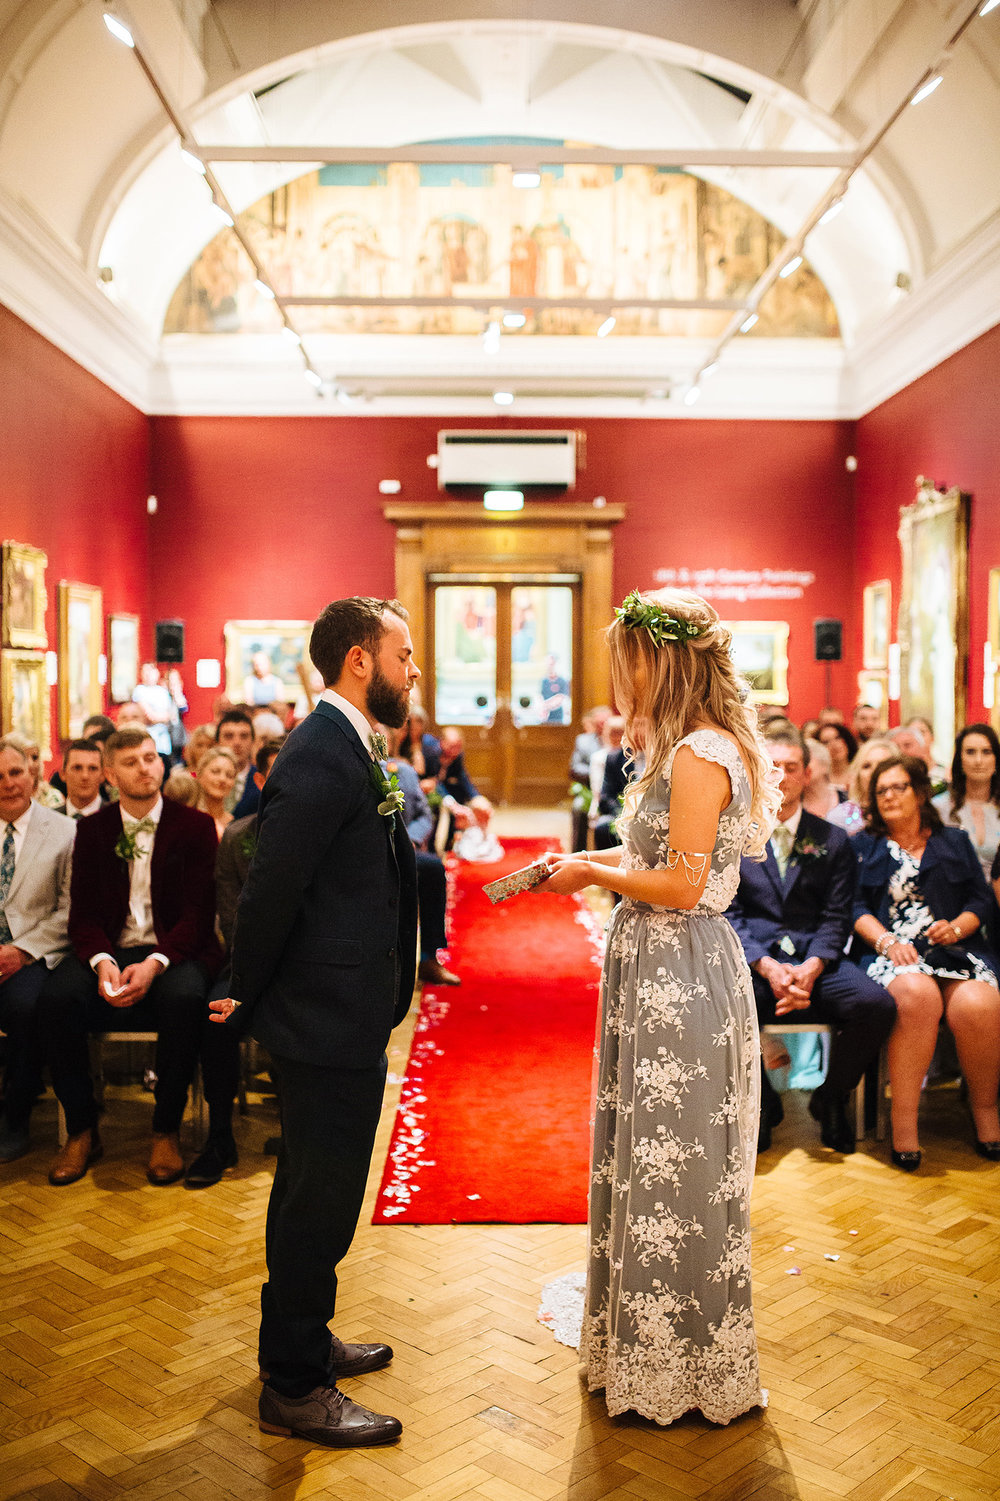 LAING ART GALLERY NEWCASTLE WEDDING PHOTOGRAPHY 72.JPG